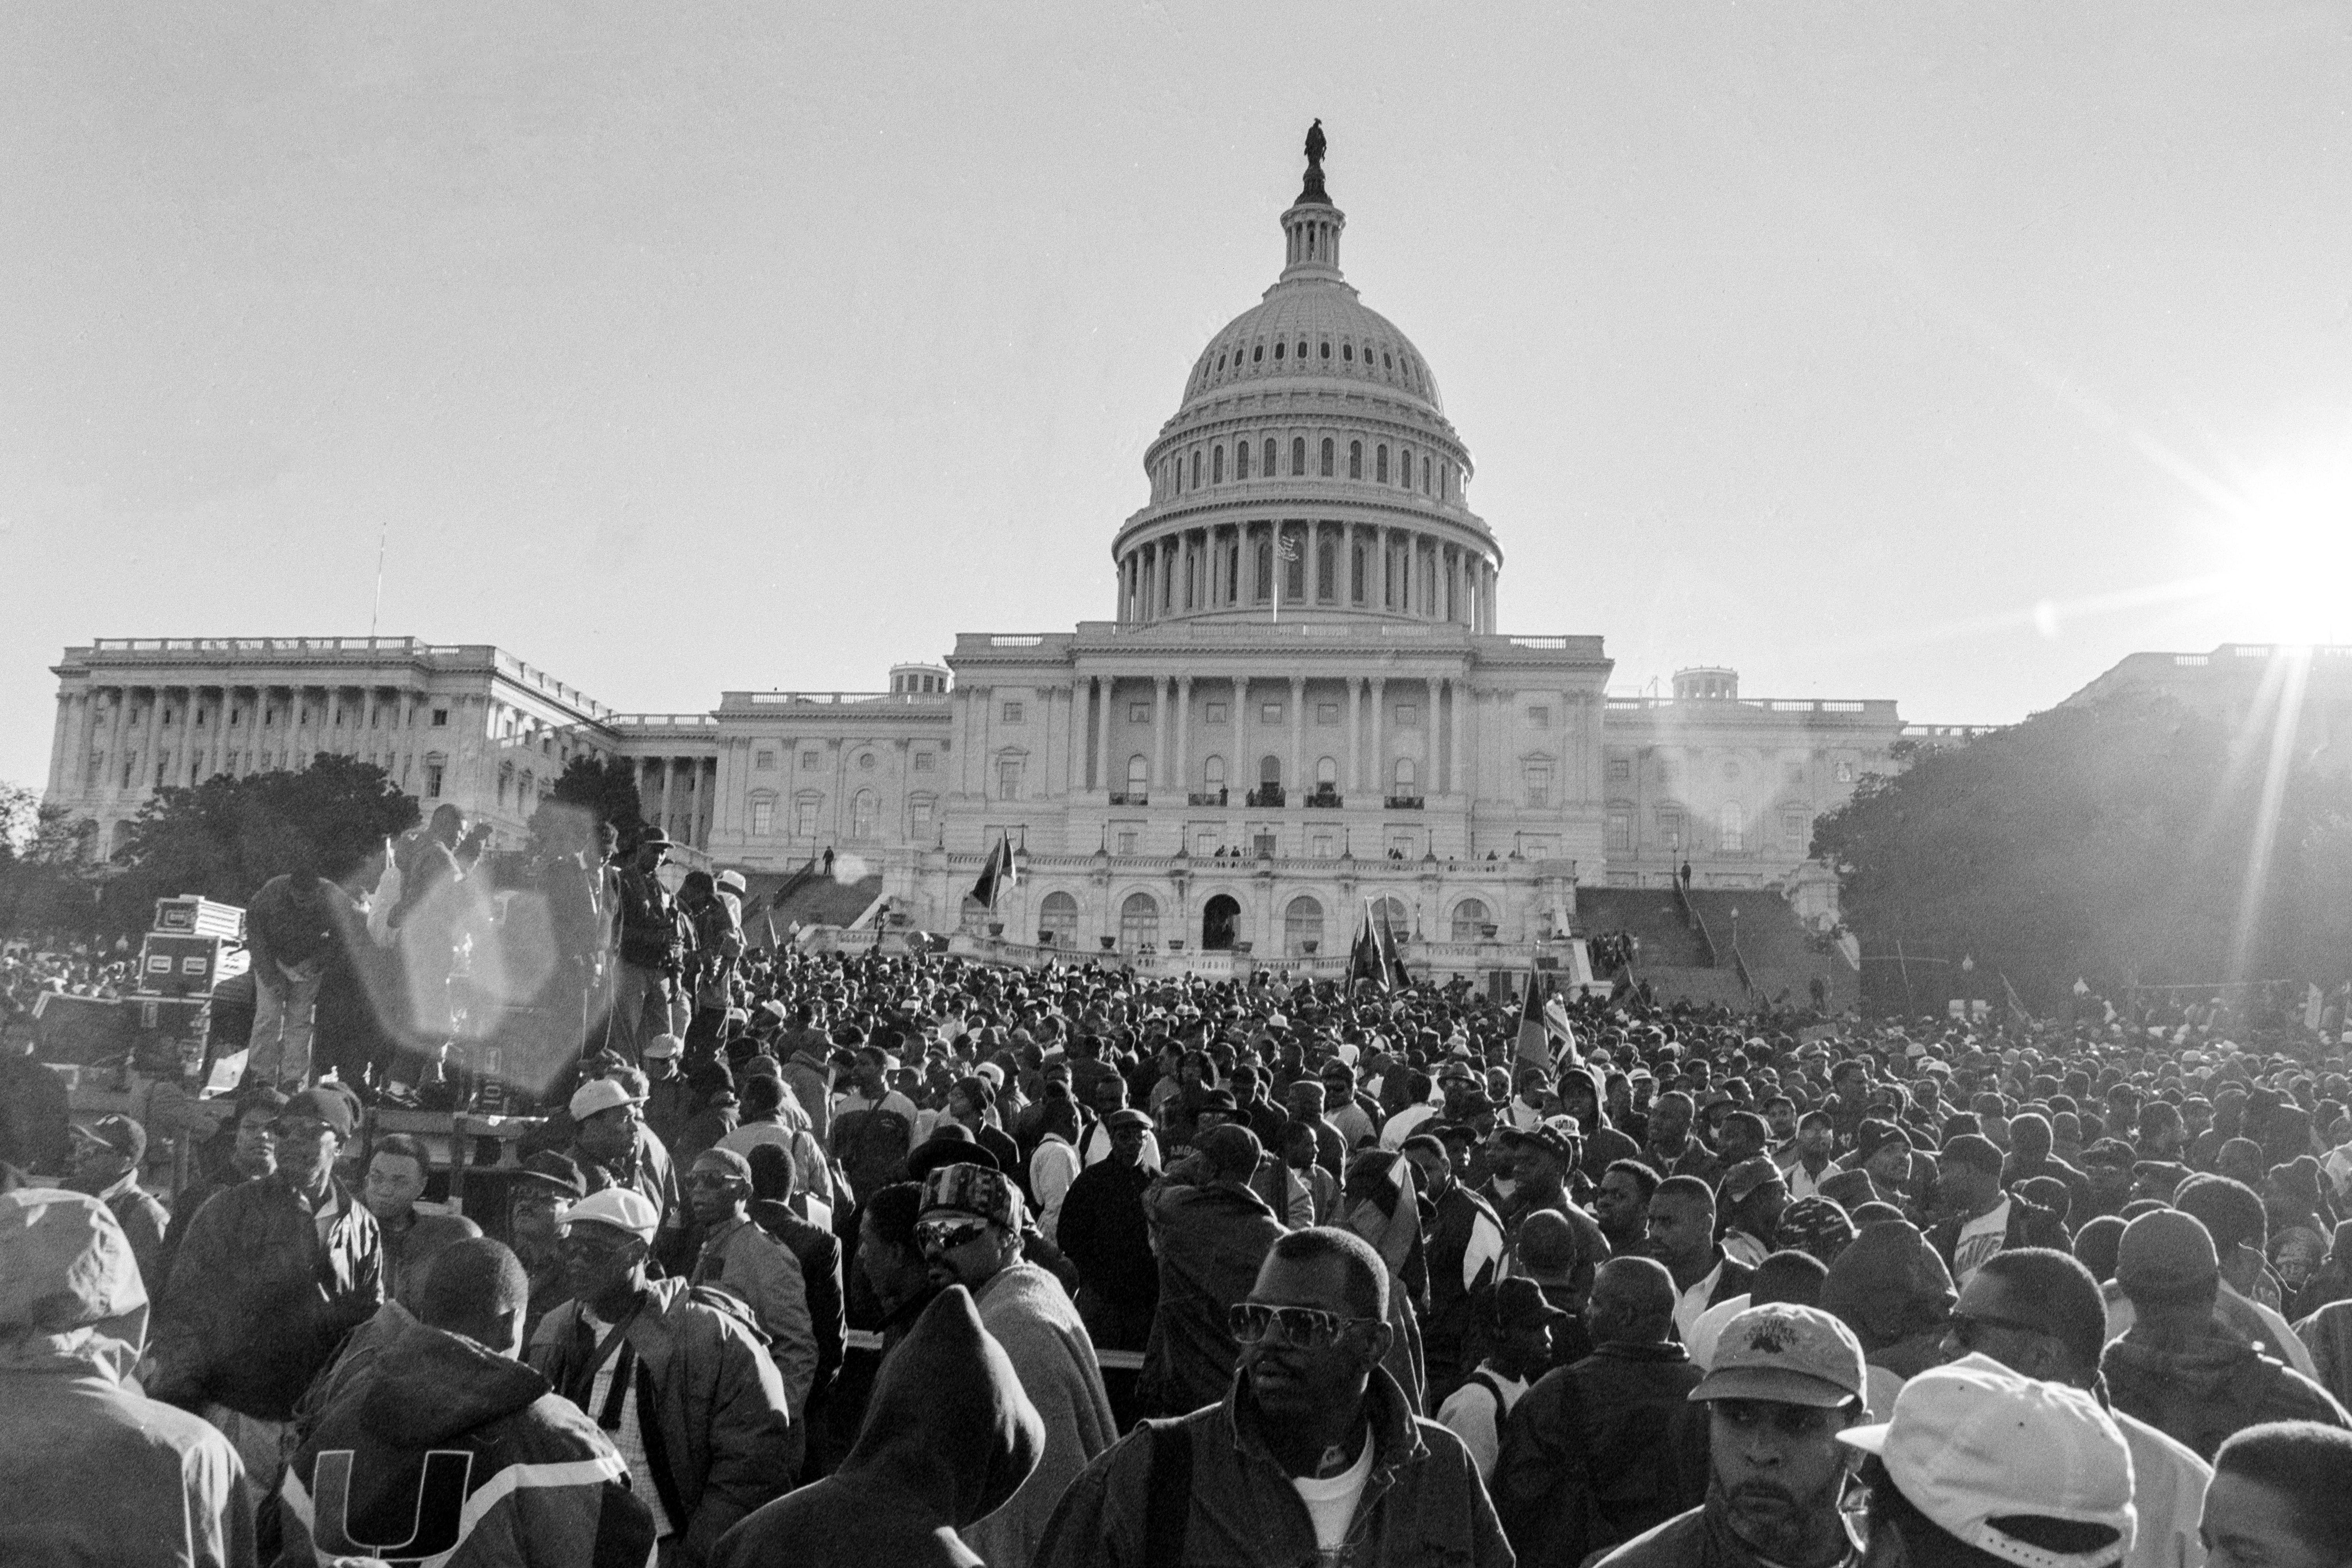 There never was an exact count of how many people attended the Million Man March, just conflicting crowd estimates that ranged from 400,000 to 1.9 million. A Boston University professor used photographs and computer analyses to estimate the crowd at 837,000.